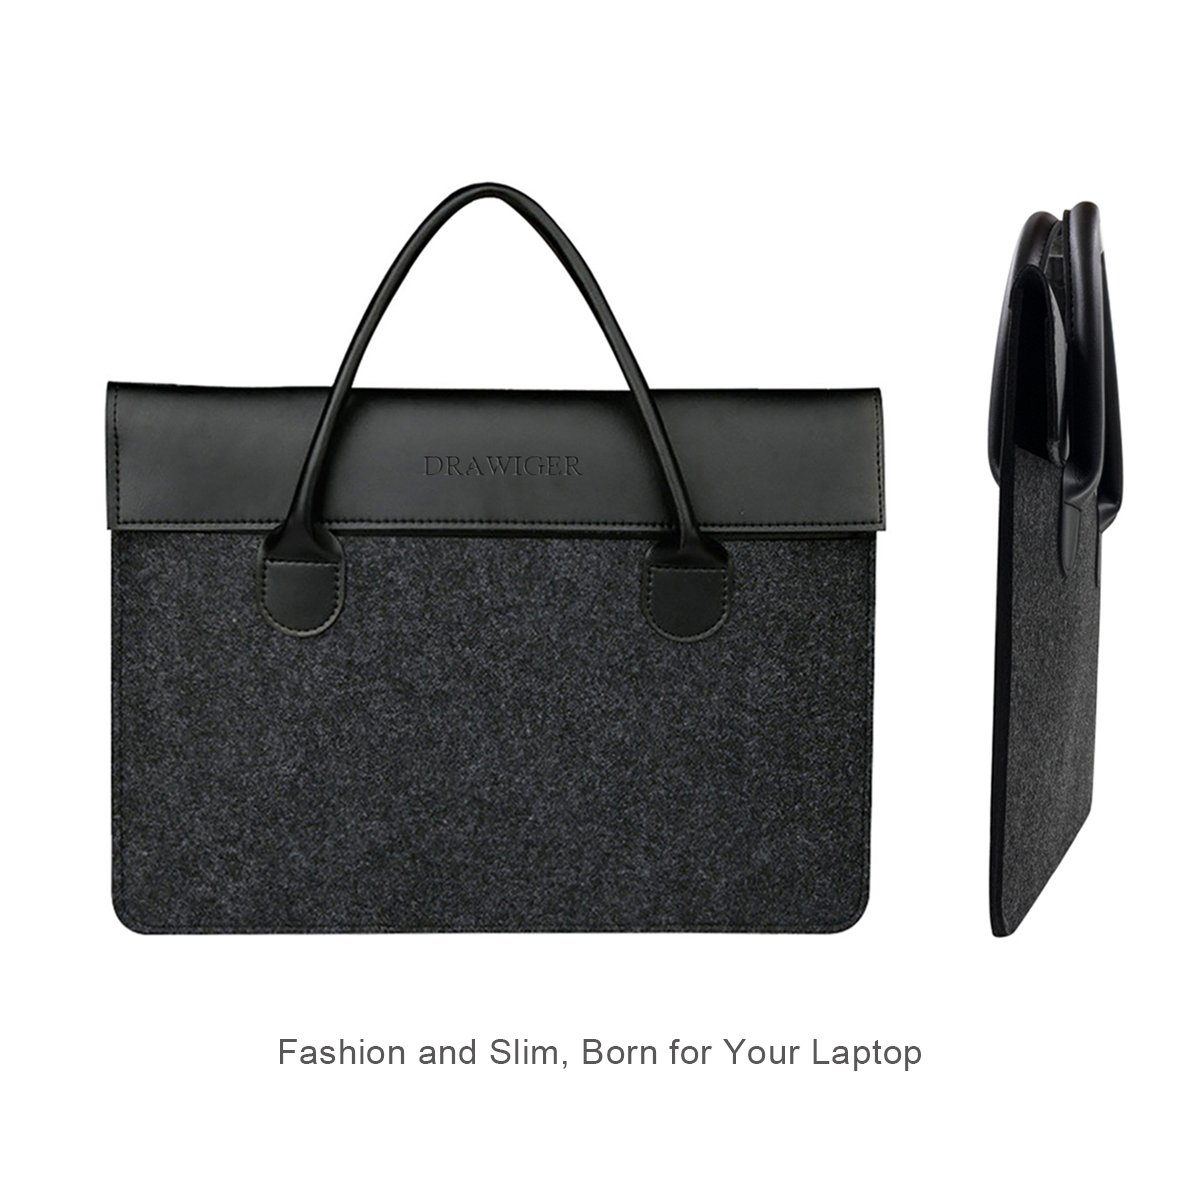 e094bf82635a Amazon.com: DRAWIGER Wool and Leather Laptop Bag Sleeve Briefcase ...